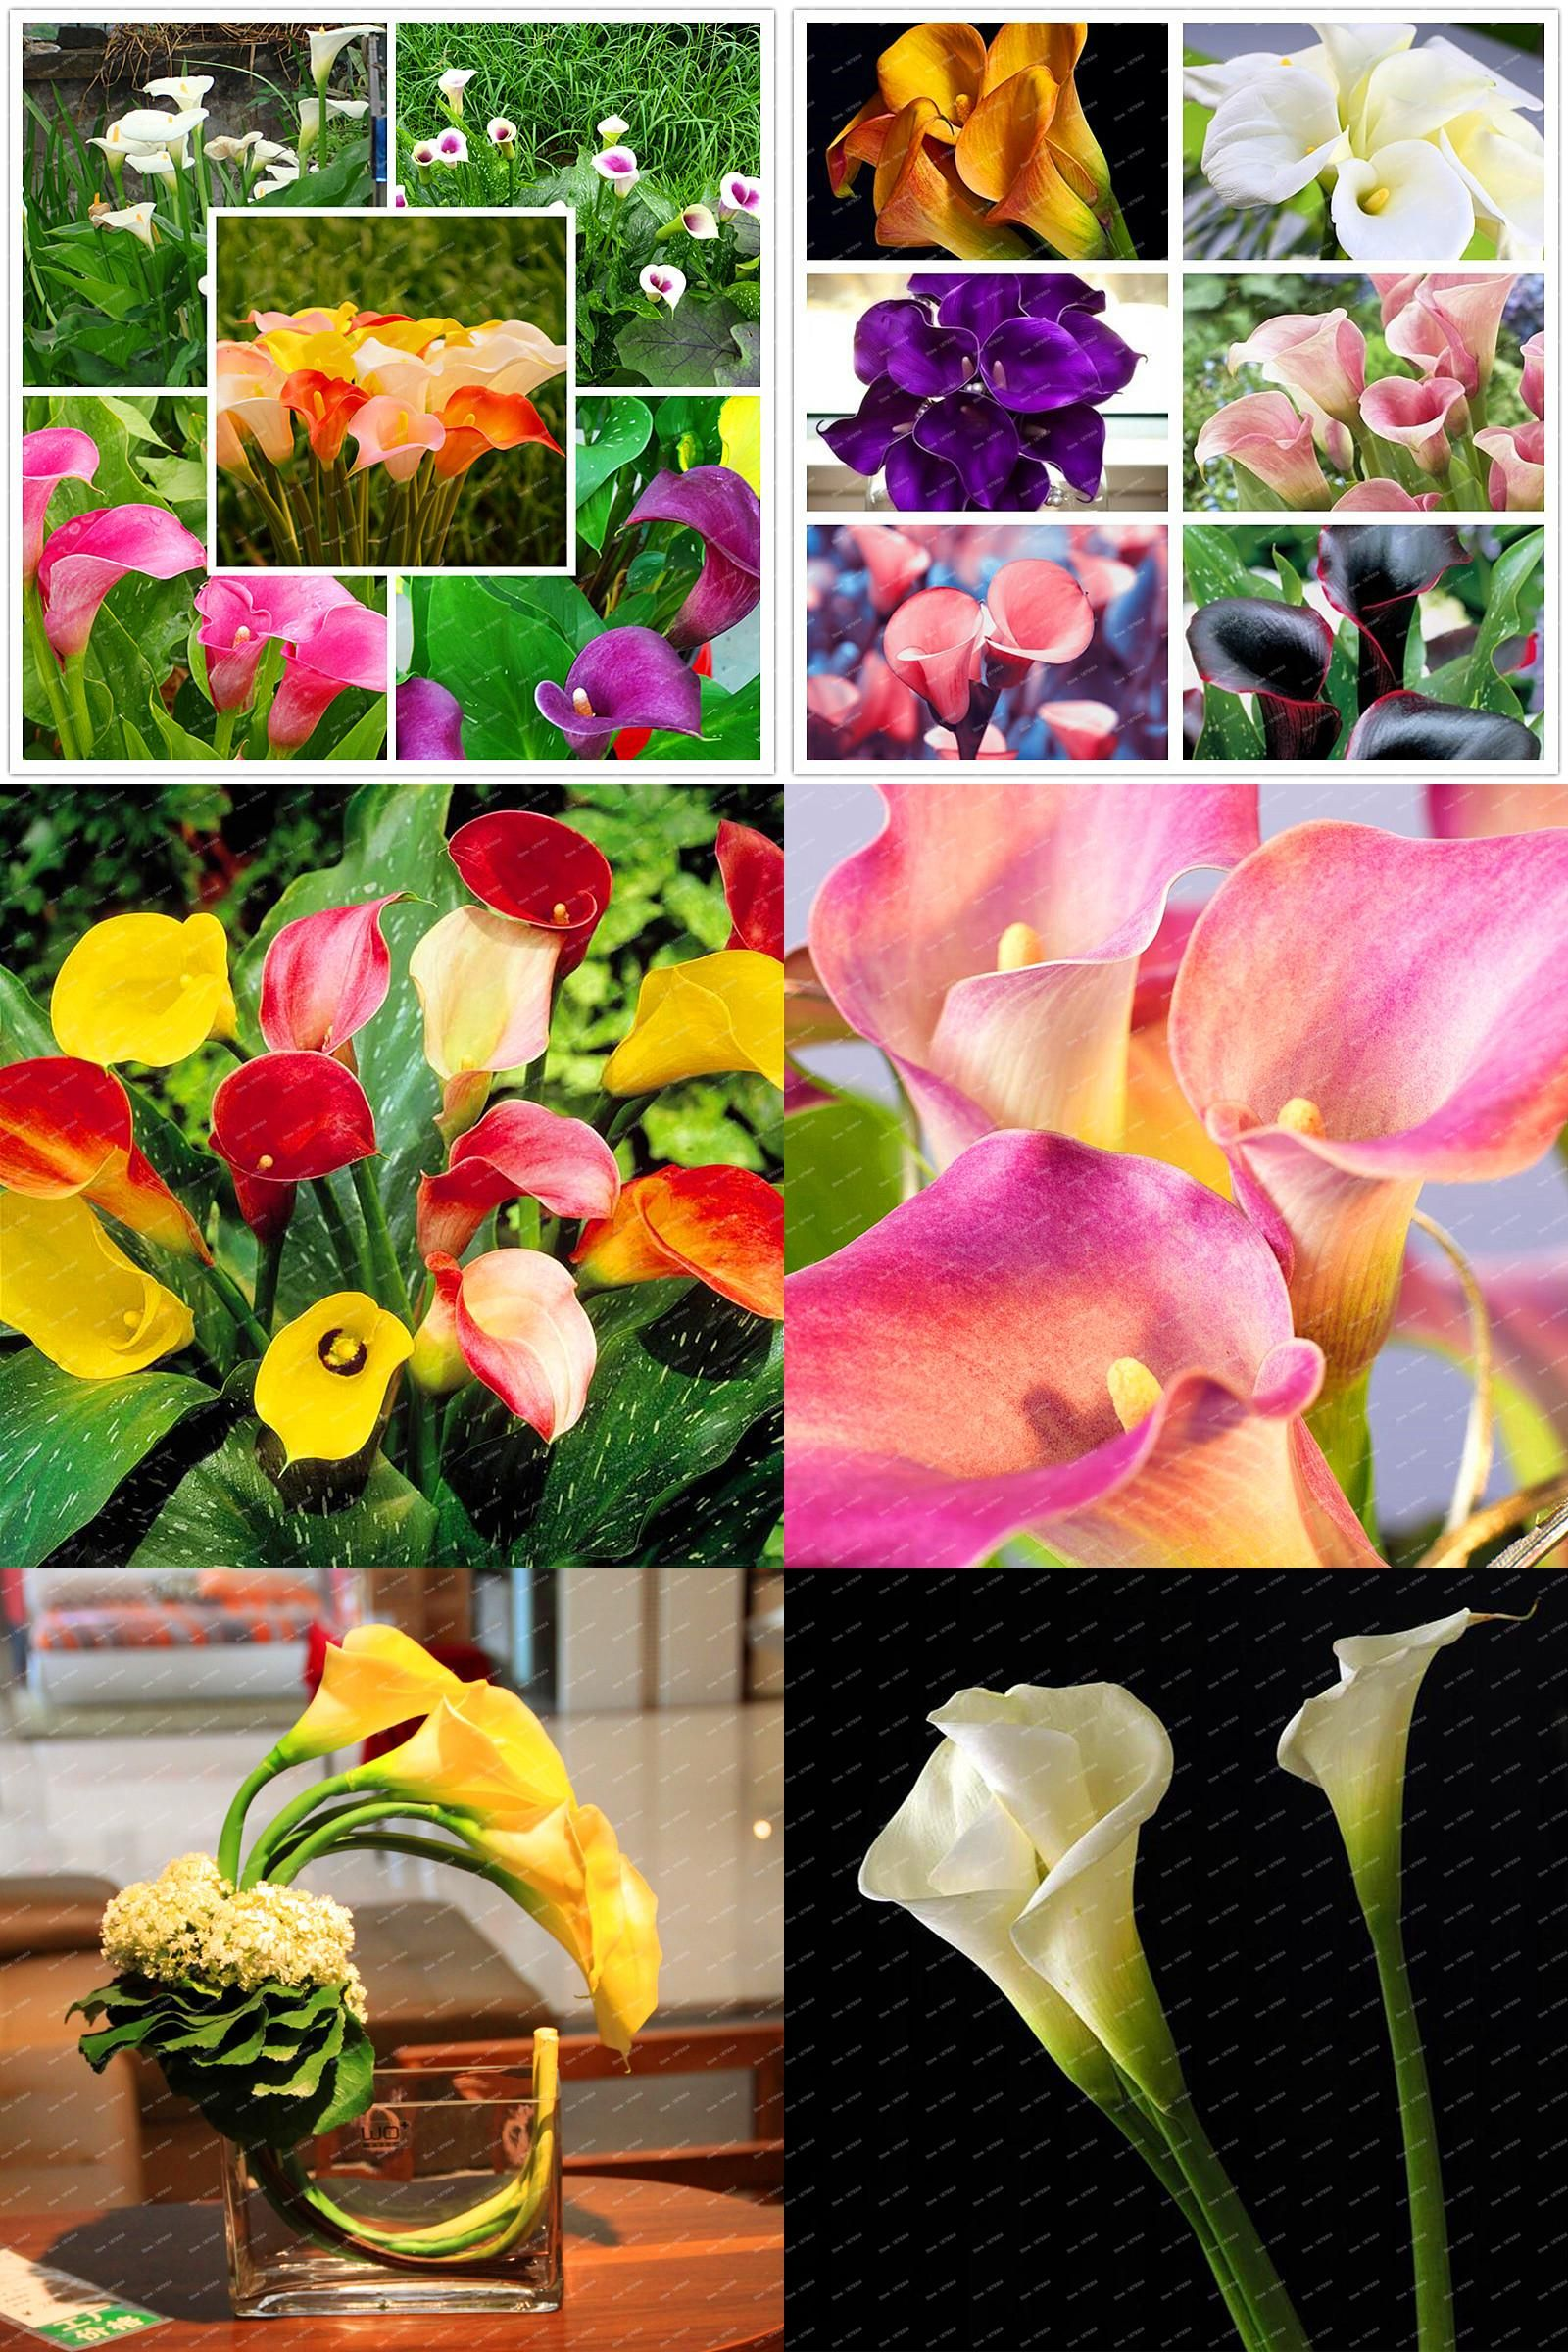 Visit to buy 2017 new arrival flower seeds 200 pcs 100 real cheap flower seeds buy quality flowers for directly from china seeds flower seed suppliers 2017 new arrival flower seeds 200 pcs real bonsai colorful izmirmasajfo